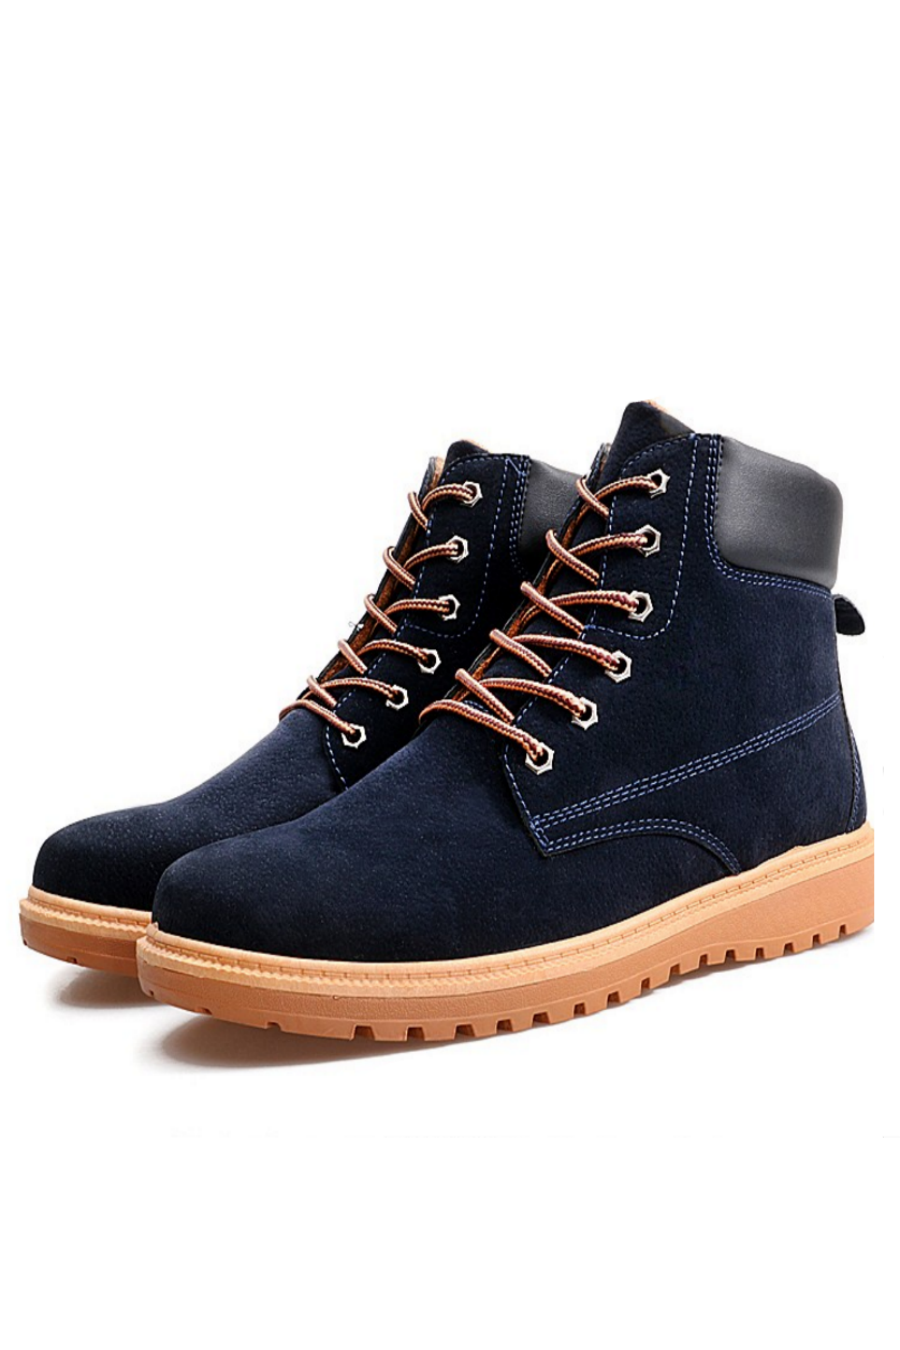 Urban Lace-Up Boots In Navy